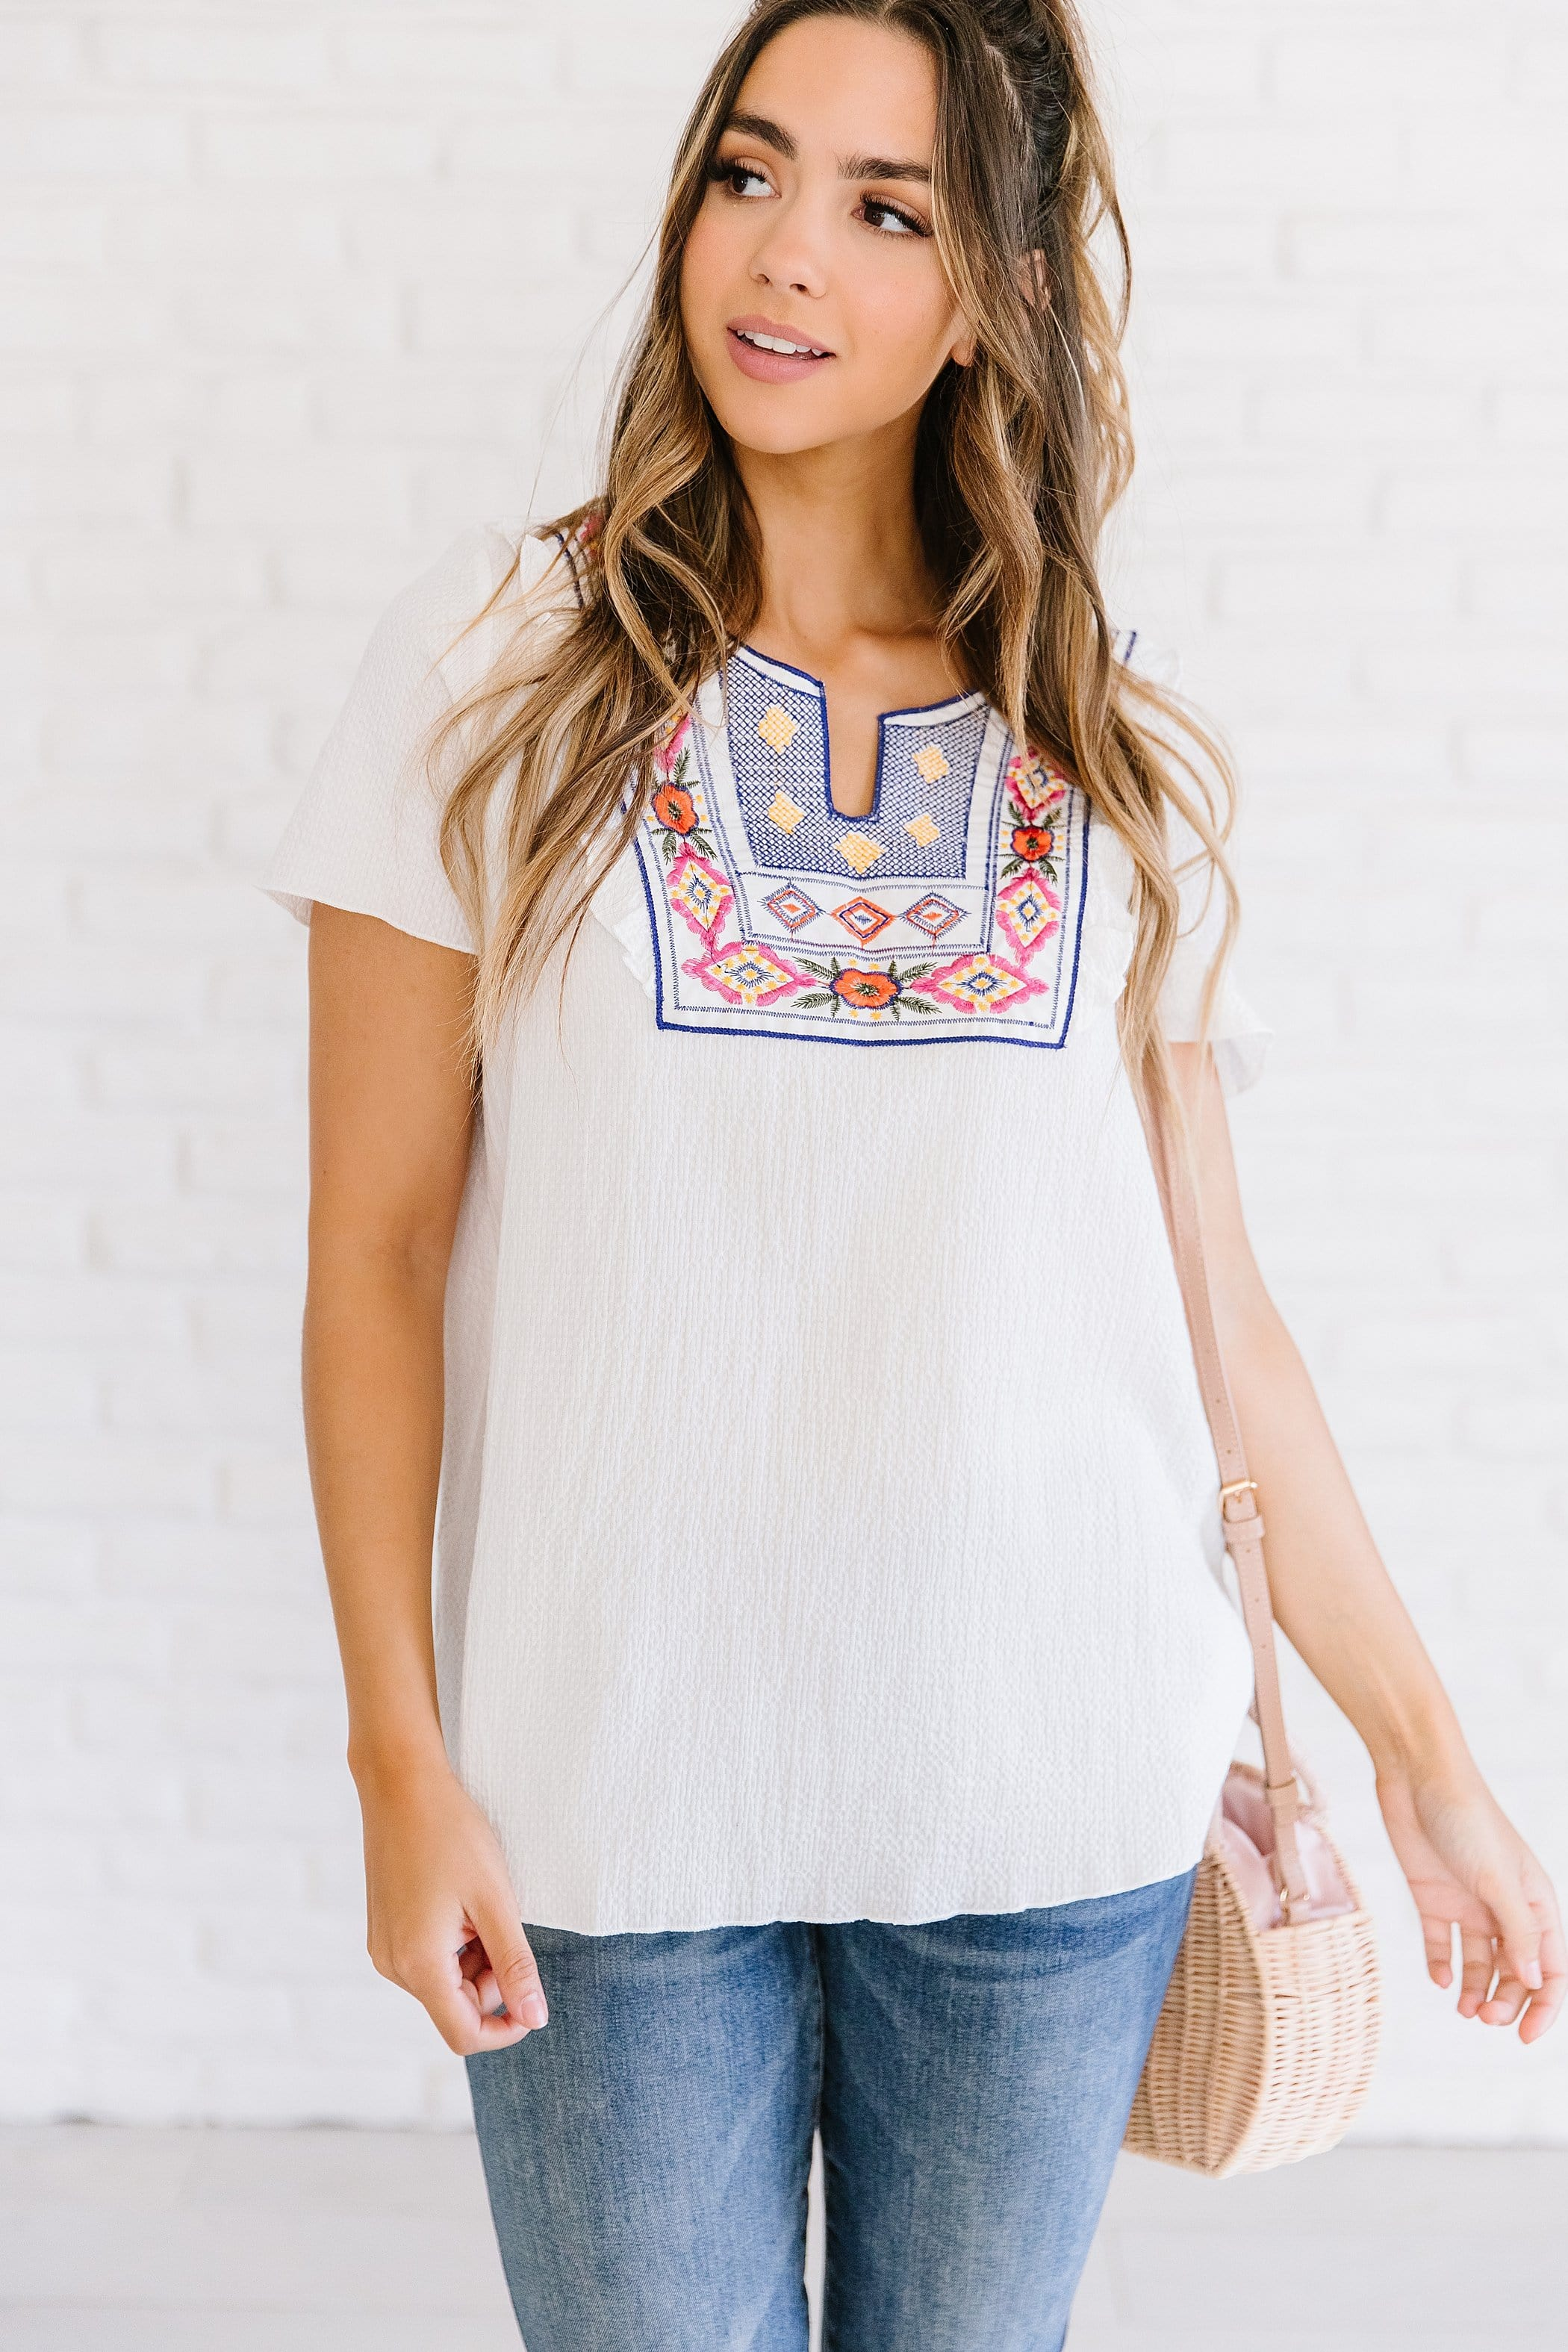 The Sunrise Boho Embroidered Top in White